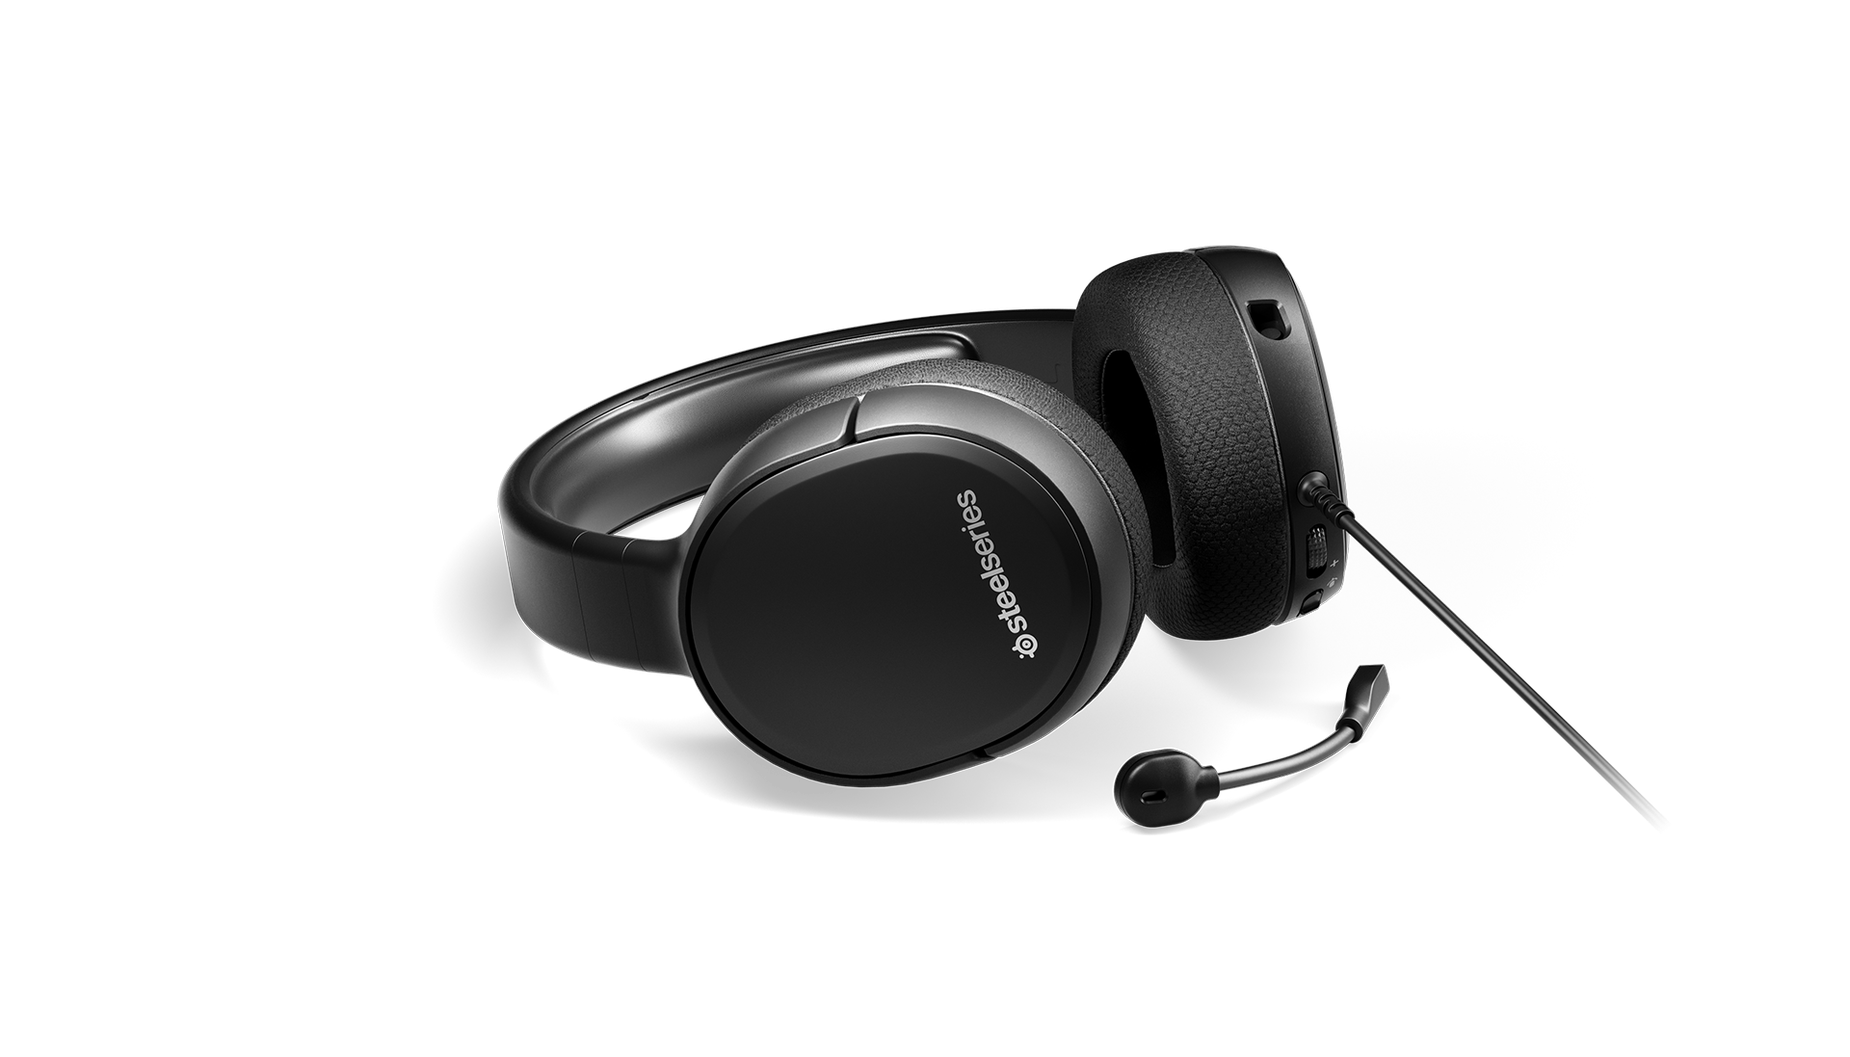 Arctis 1 gaming headset on surface with microphone detached.